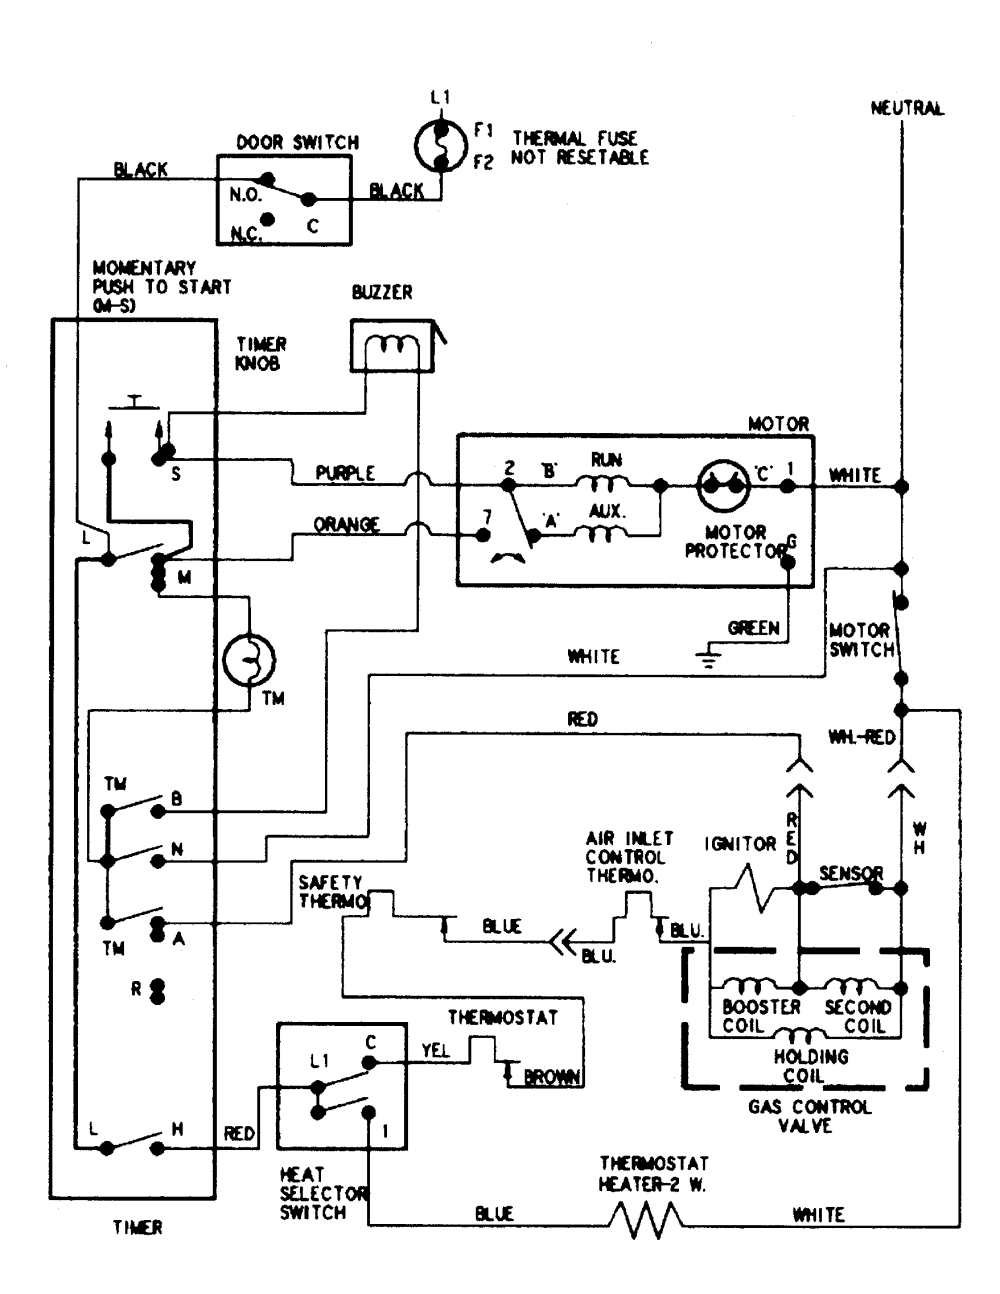 medium resolution of maytag dryer maytag dryer wiring diagrammaytag dryer wiring diagram images